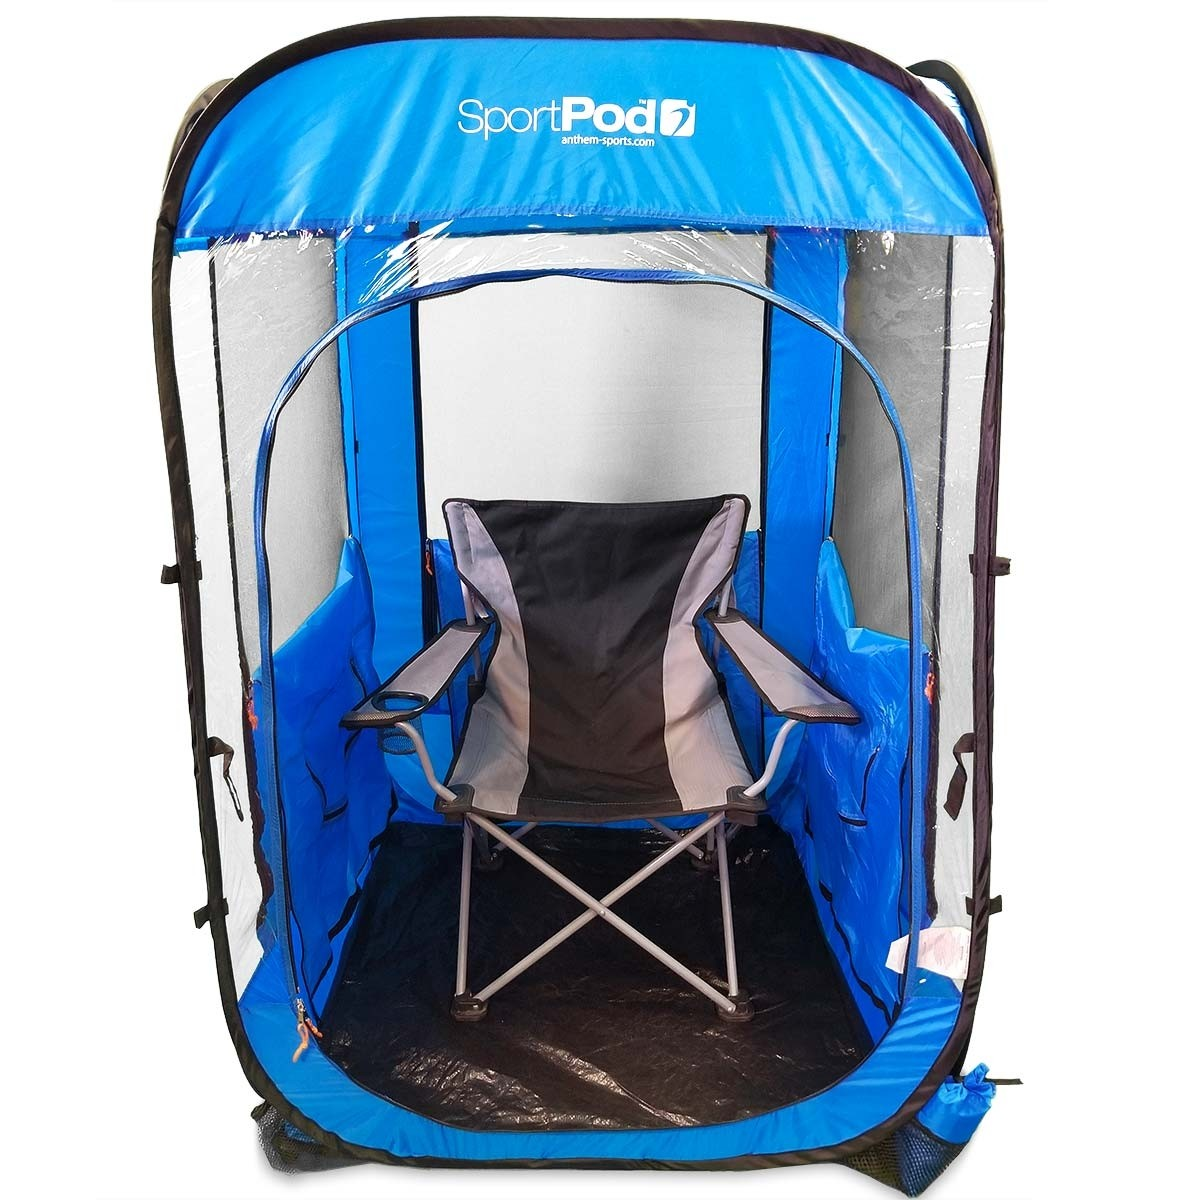 Solopod All Weather Sportpod Pop Up Chair Tent A00 211